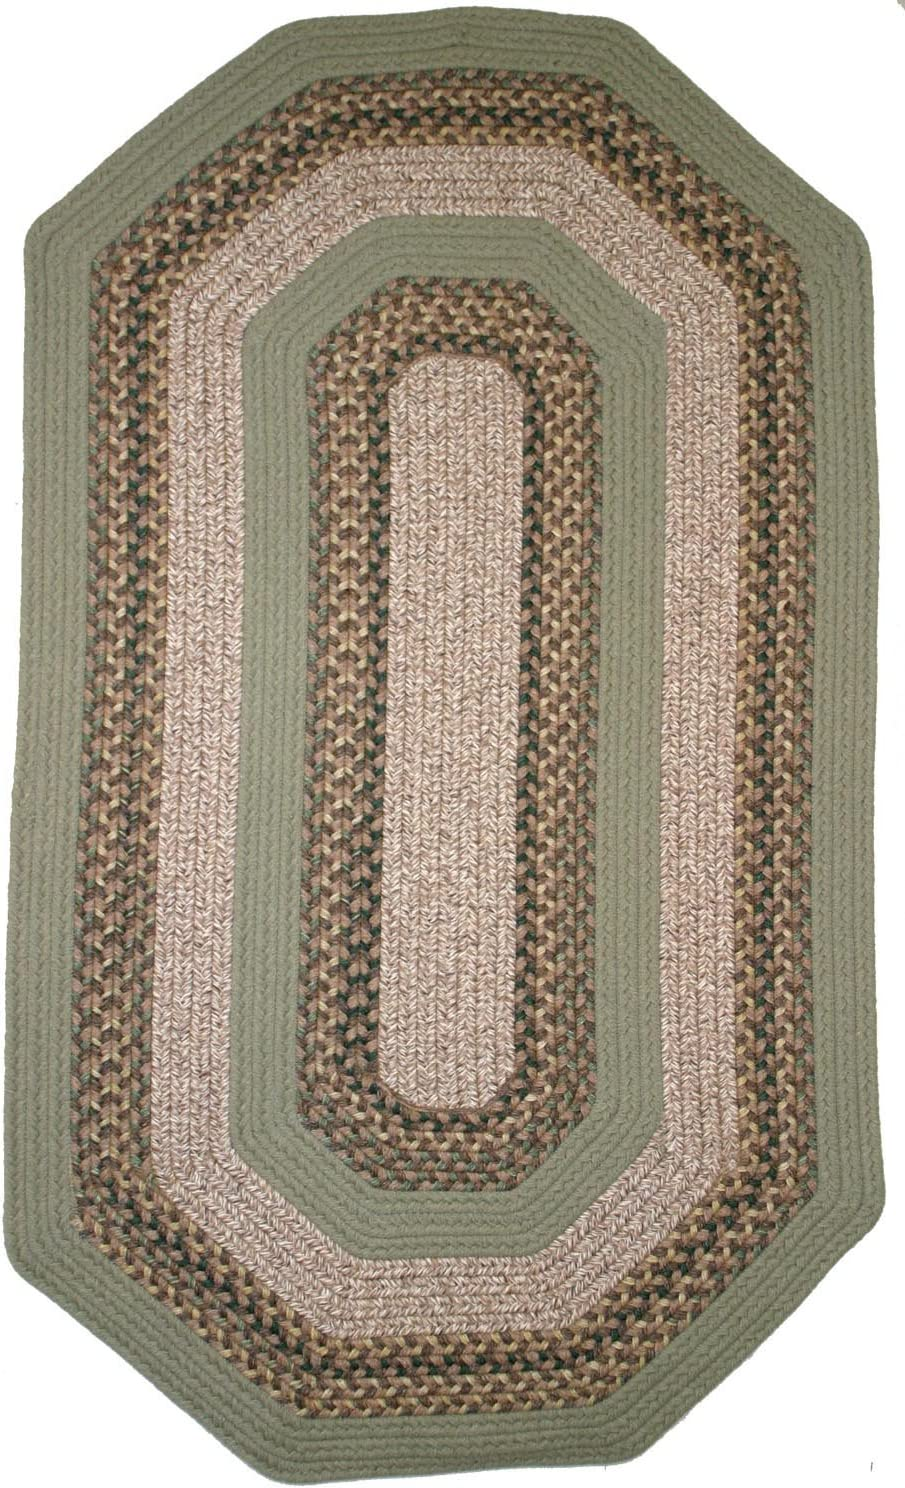 Thorndike Mills Beantown Braided Rug 9' x 12' Elongated Octagon Boston Garden Green